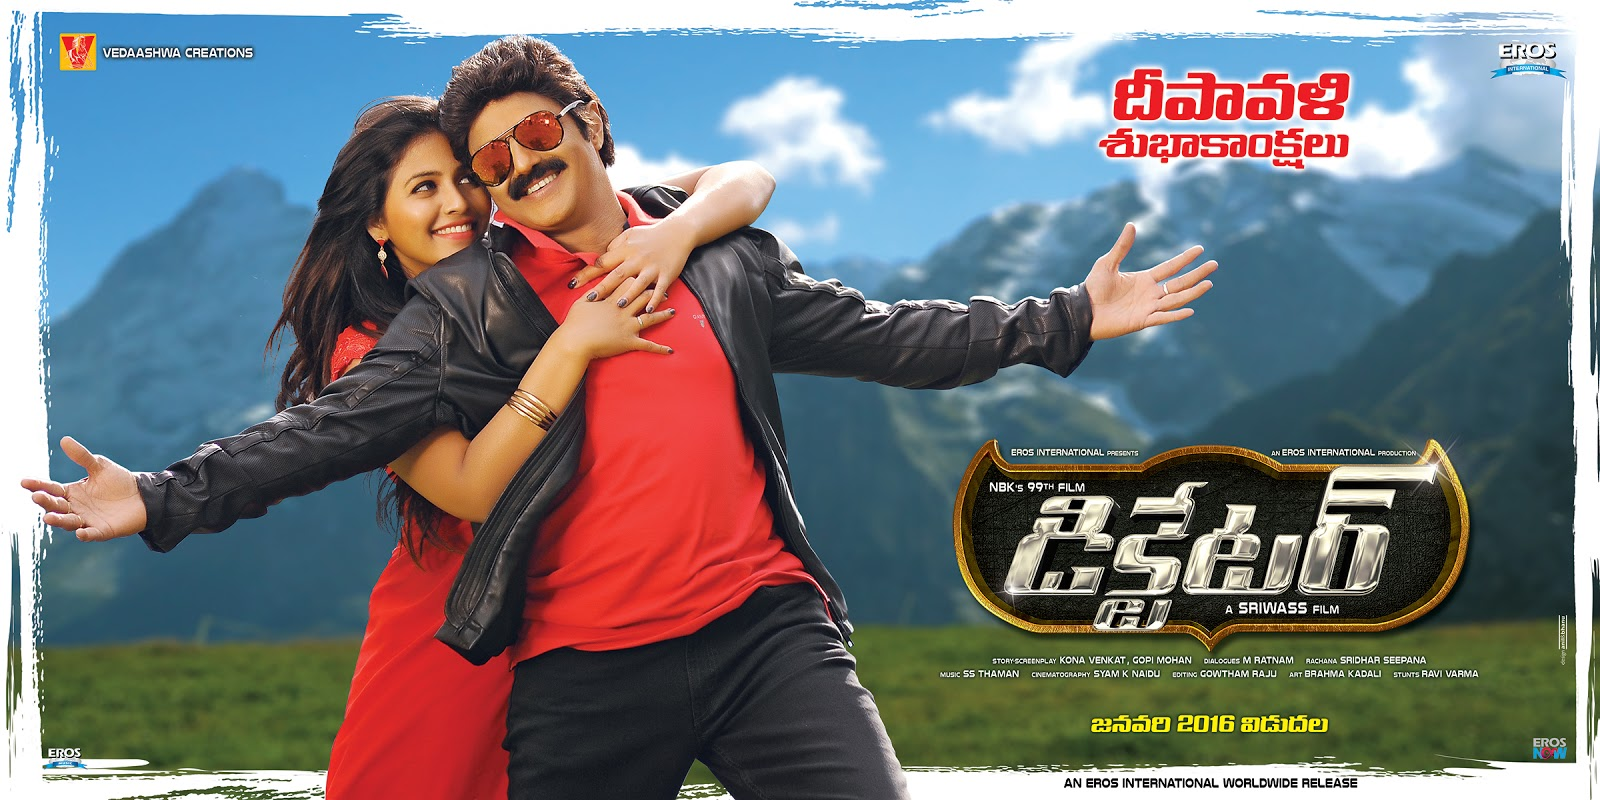 Www.latest telugu movies video songs free download.com